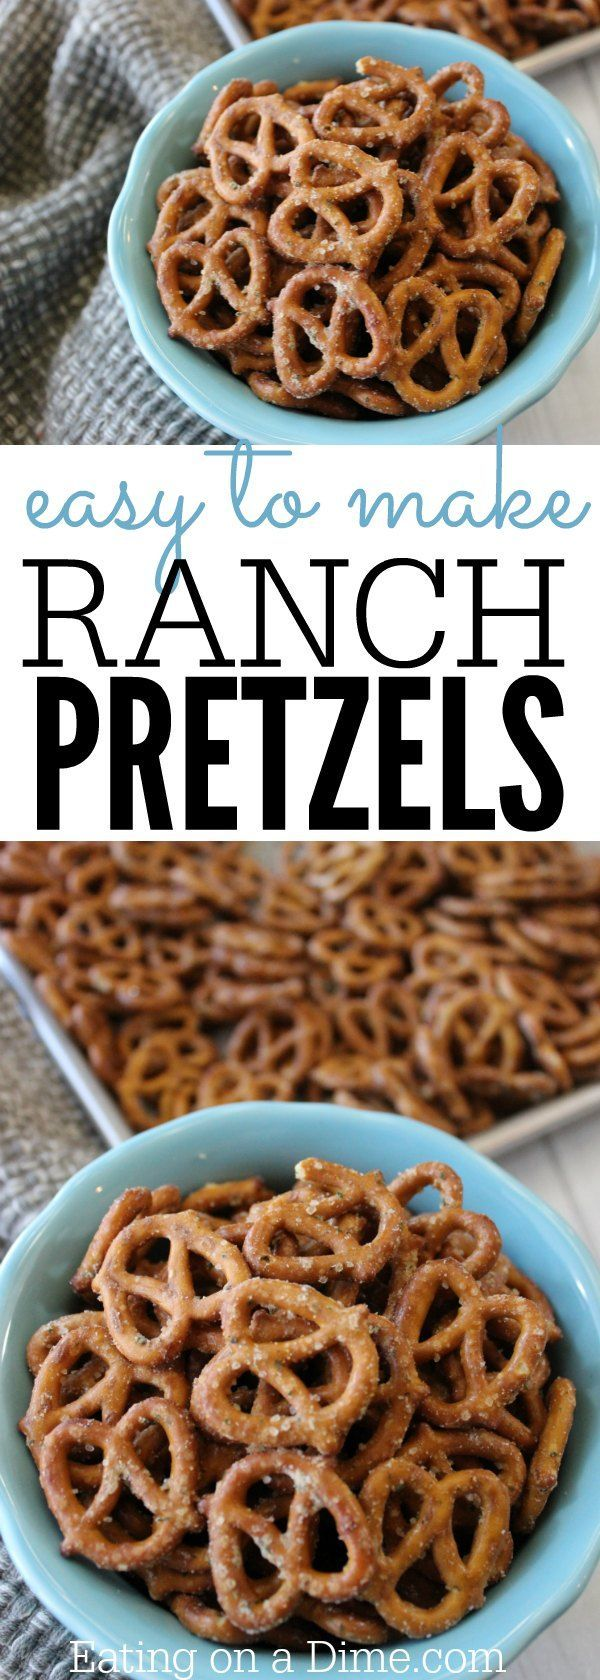 Easy snack idea - Garlic ranch pretzels recipe. Try this kid friendly seasoned pretzels recipe that the entire family will love. We love this delicious ranch dressing pretzels recipe.